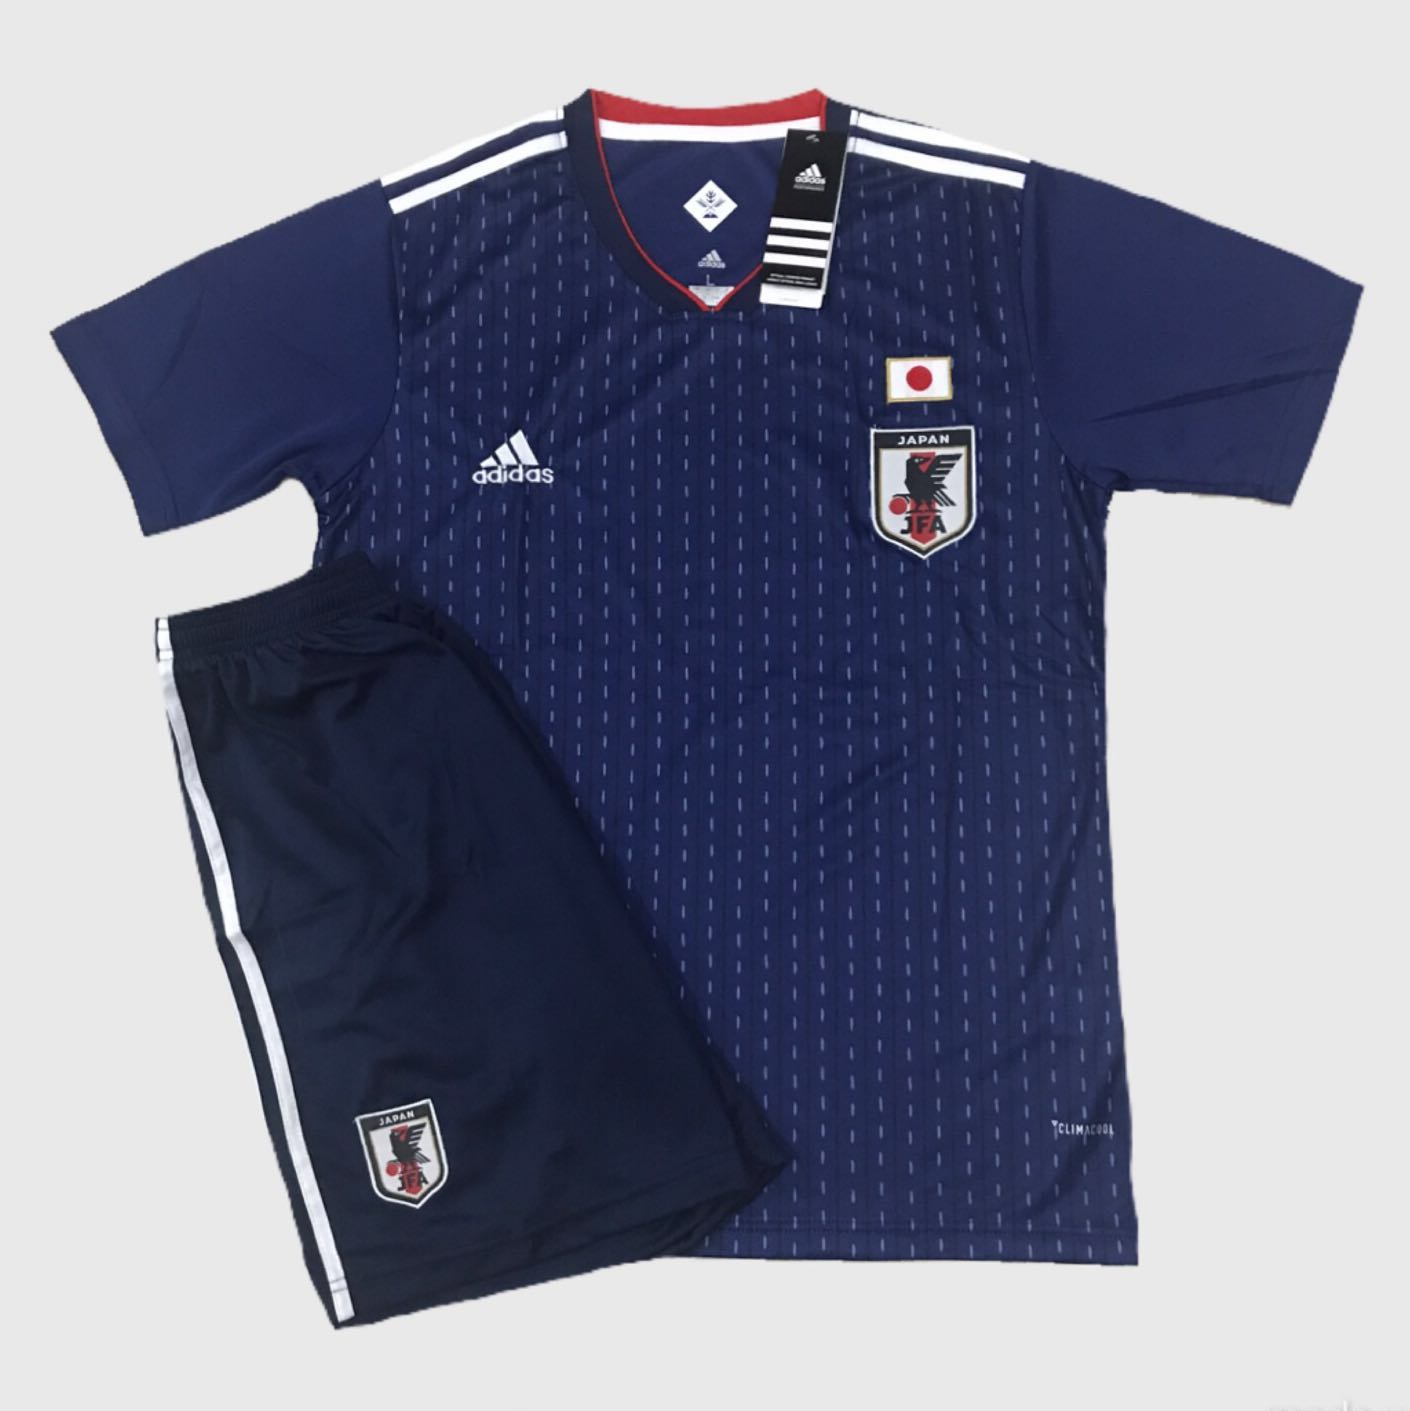 c9b176985 ❗️SALE❗️Japan 2018 World Cup Home Away Kit